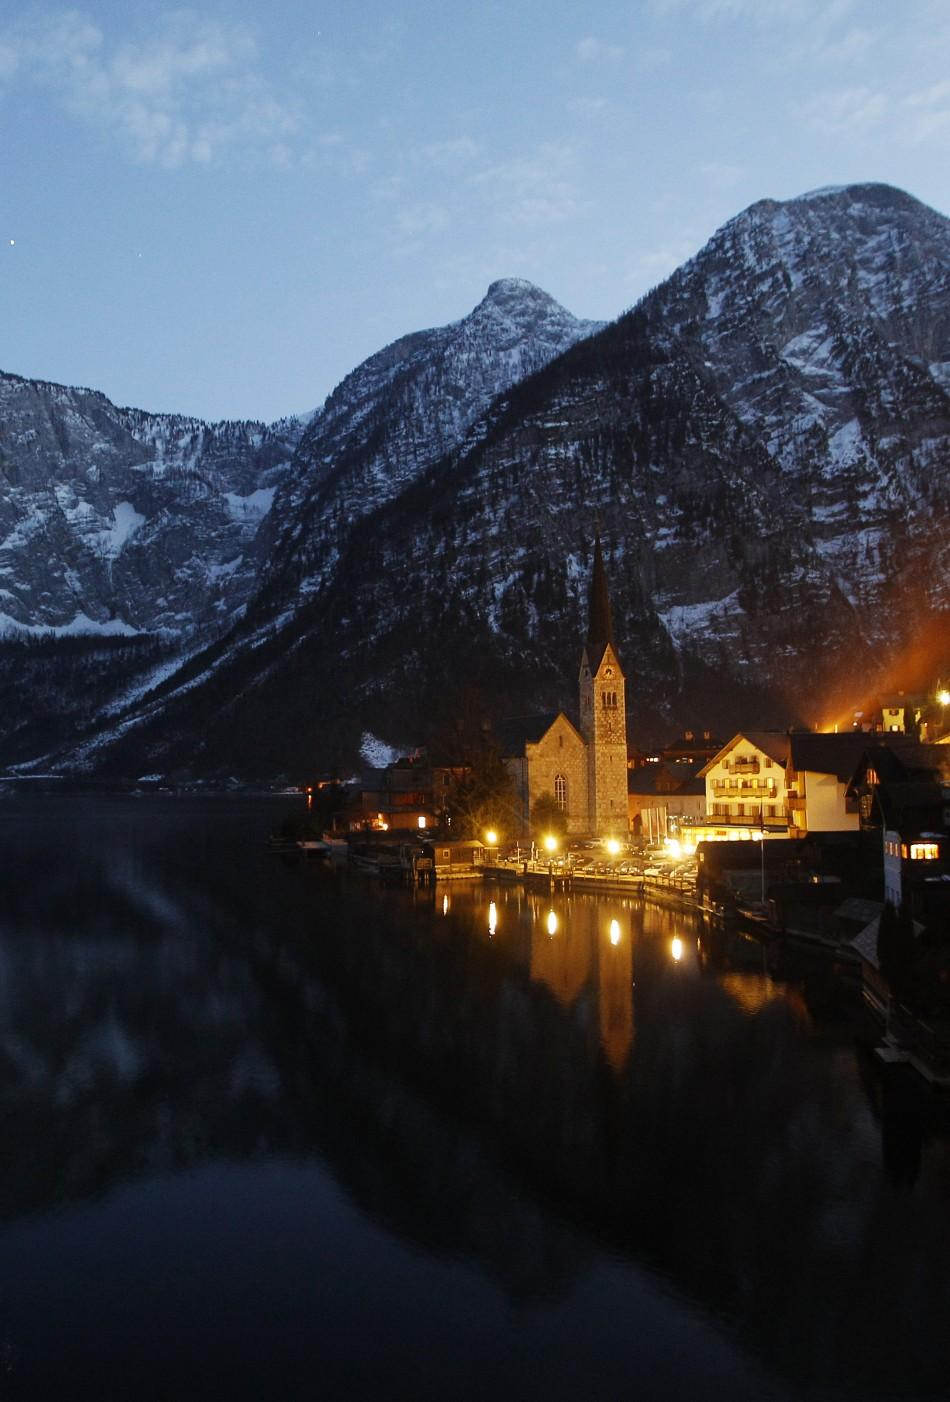 The village of Hallstatt and Lake Hallstaetter (Hallstaettersee) are seen in the province of Upper Austria